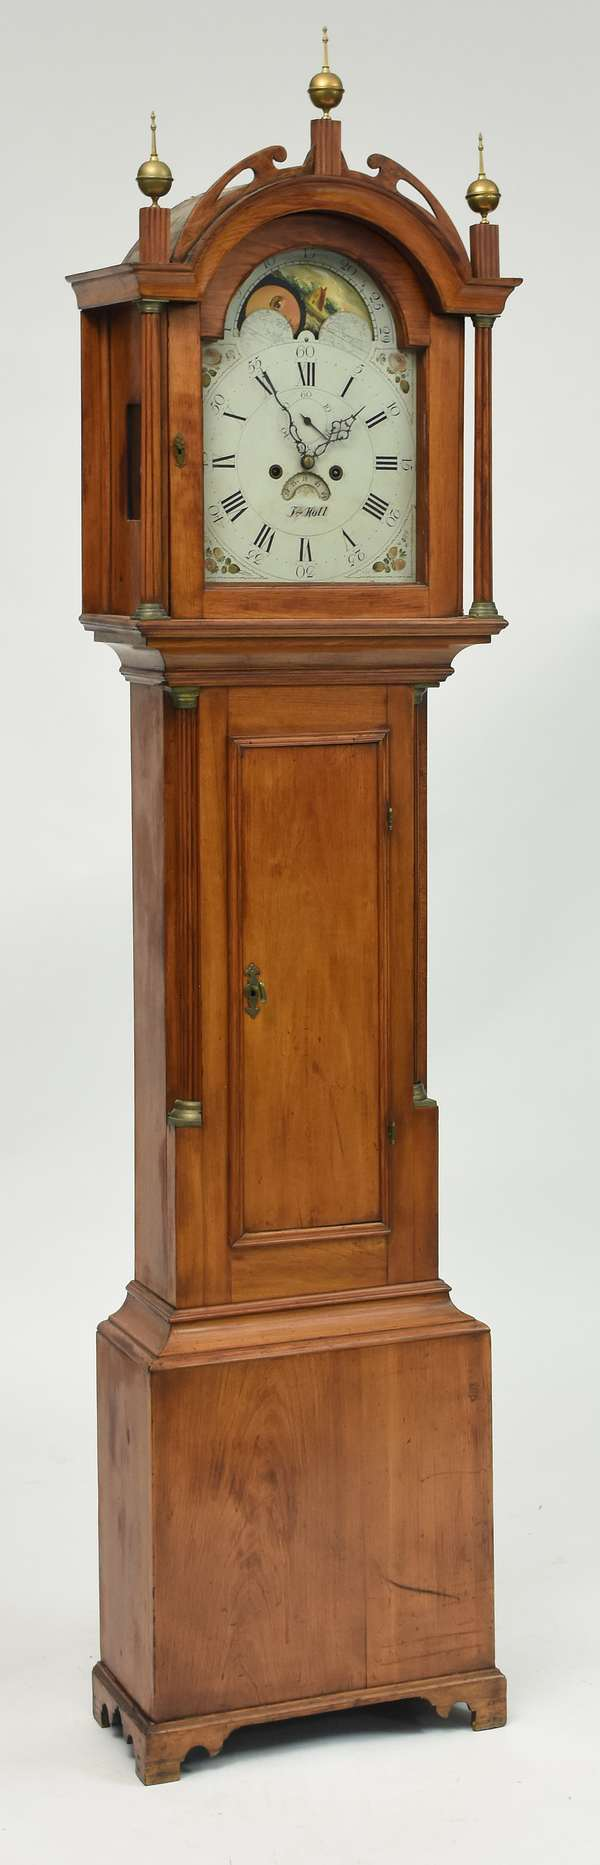 Federal cherry small size grandfather clock, brass works, dial signed J. Hall, c. 1800, 85